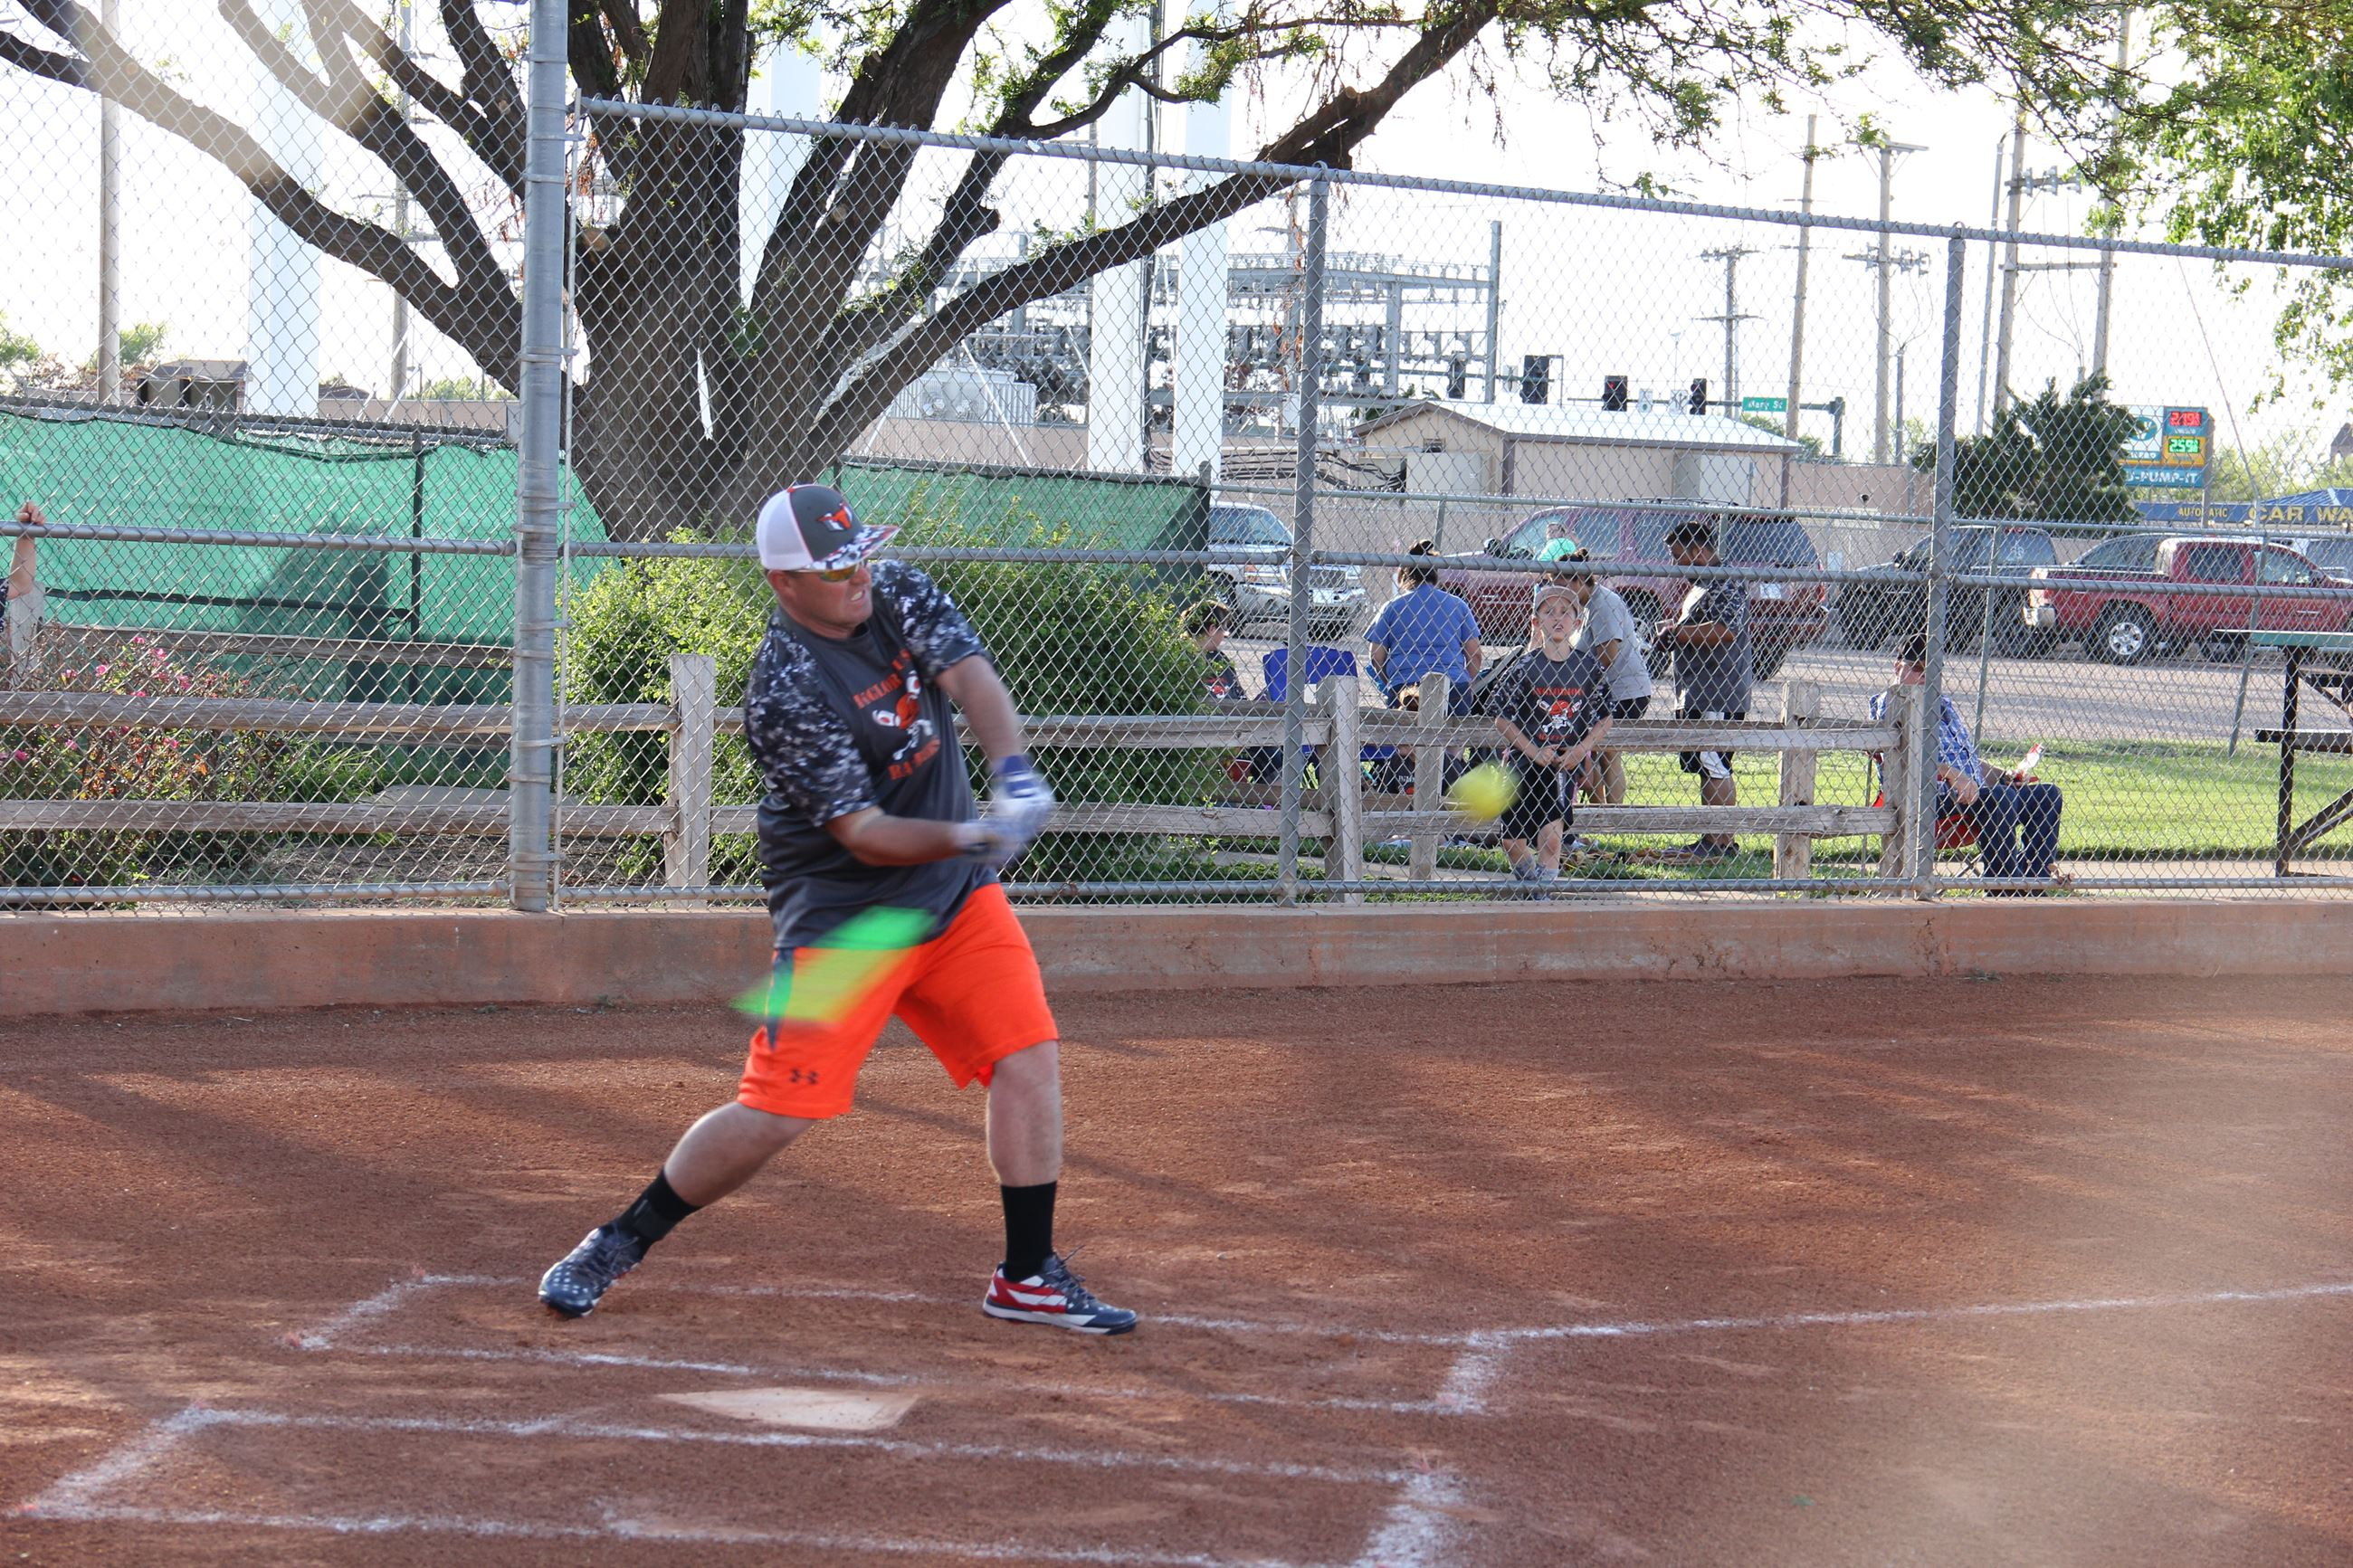 Man up to bat in softball